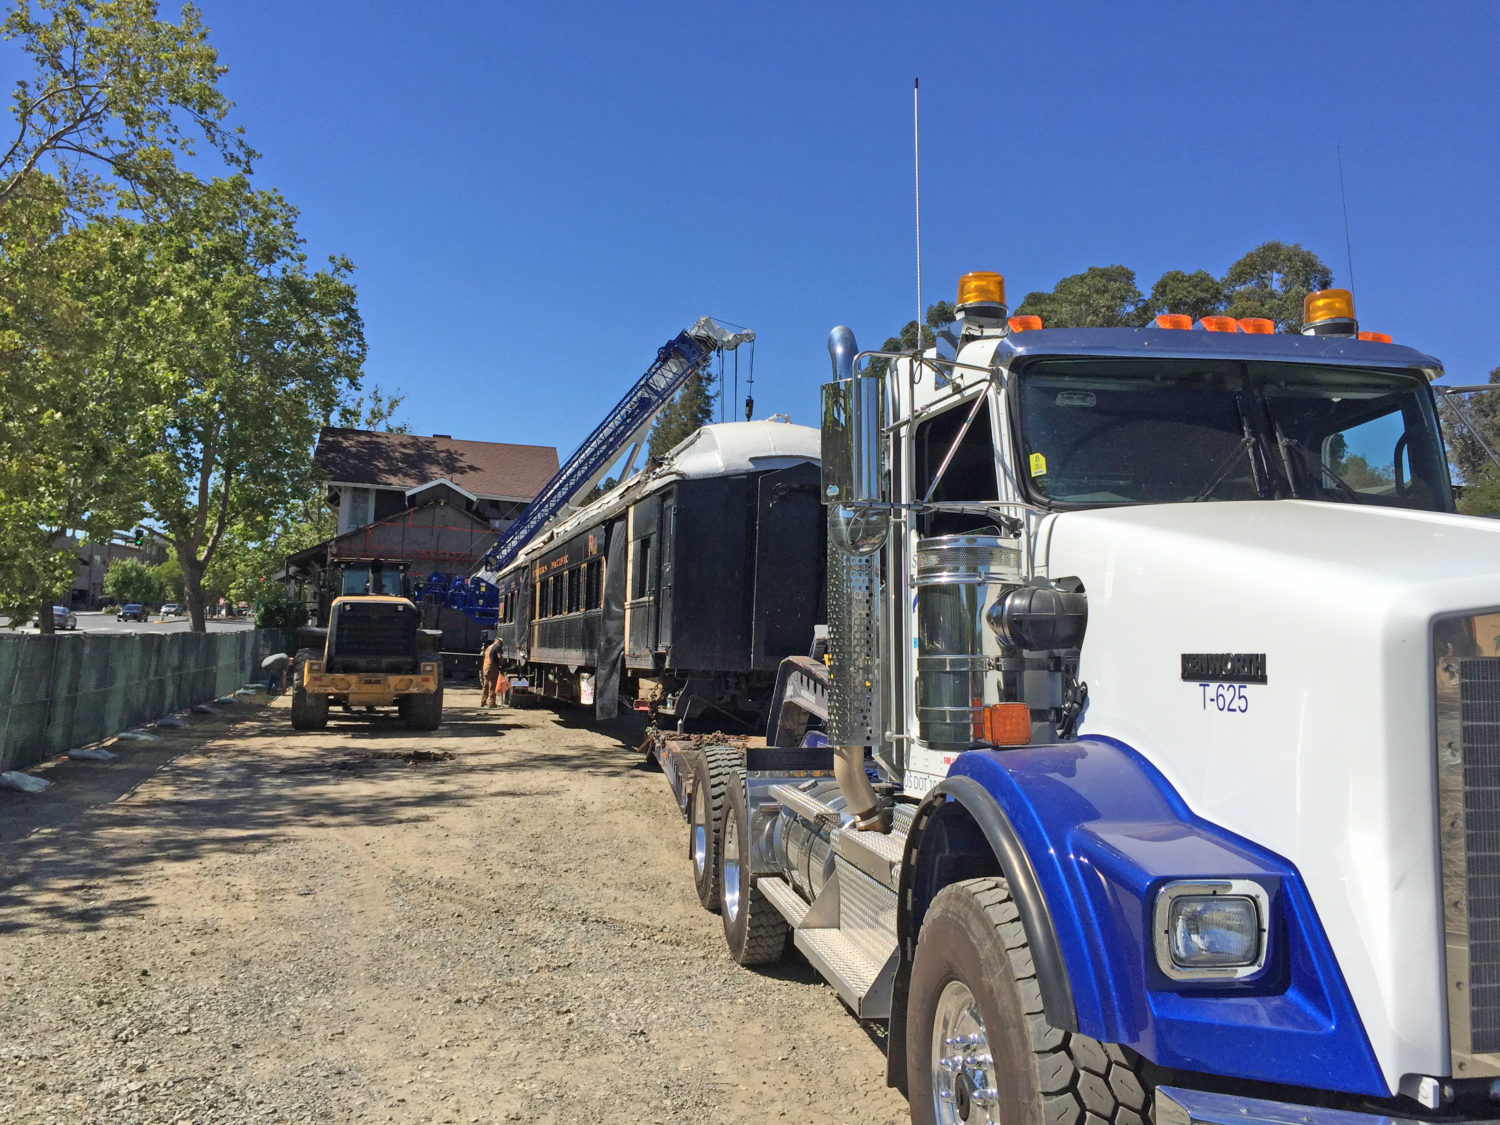 The Car is Almost Ready to Roll — to leave Walnut Creek for Martinez